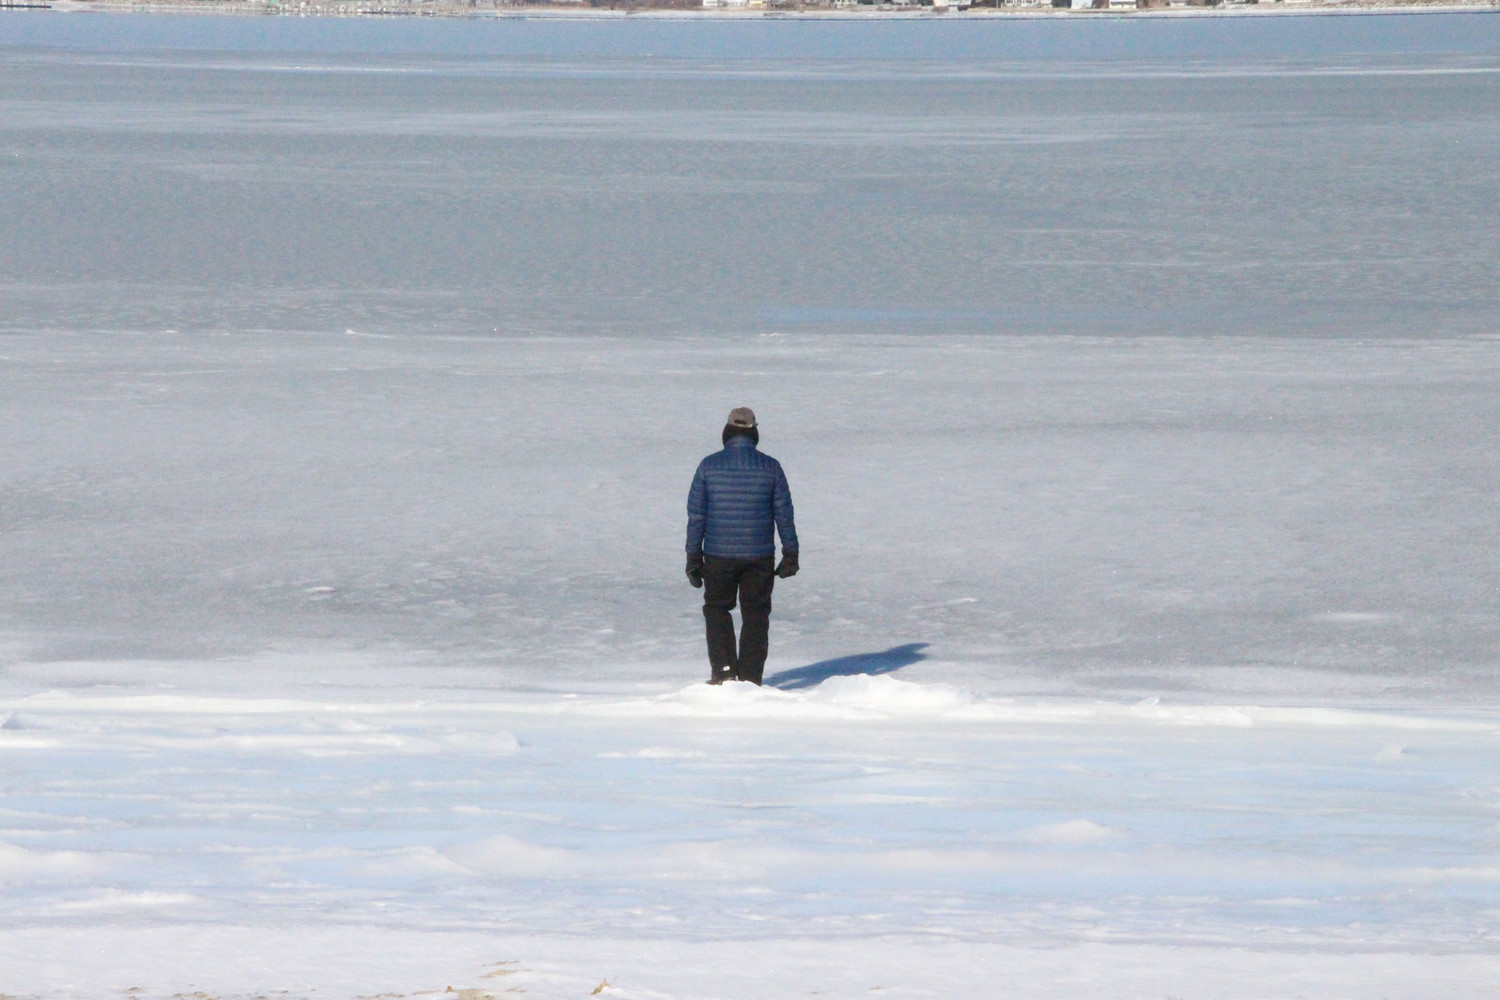 SKATES MIGHT HAVE WORKED: One of those who turned out for the 7th annual Frozen Clam Dip and Obstaplunge surveys a frozen Greenwich Bay. While a hole had been cut in the ice, the DEM forbade anyone from taking a dip.